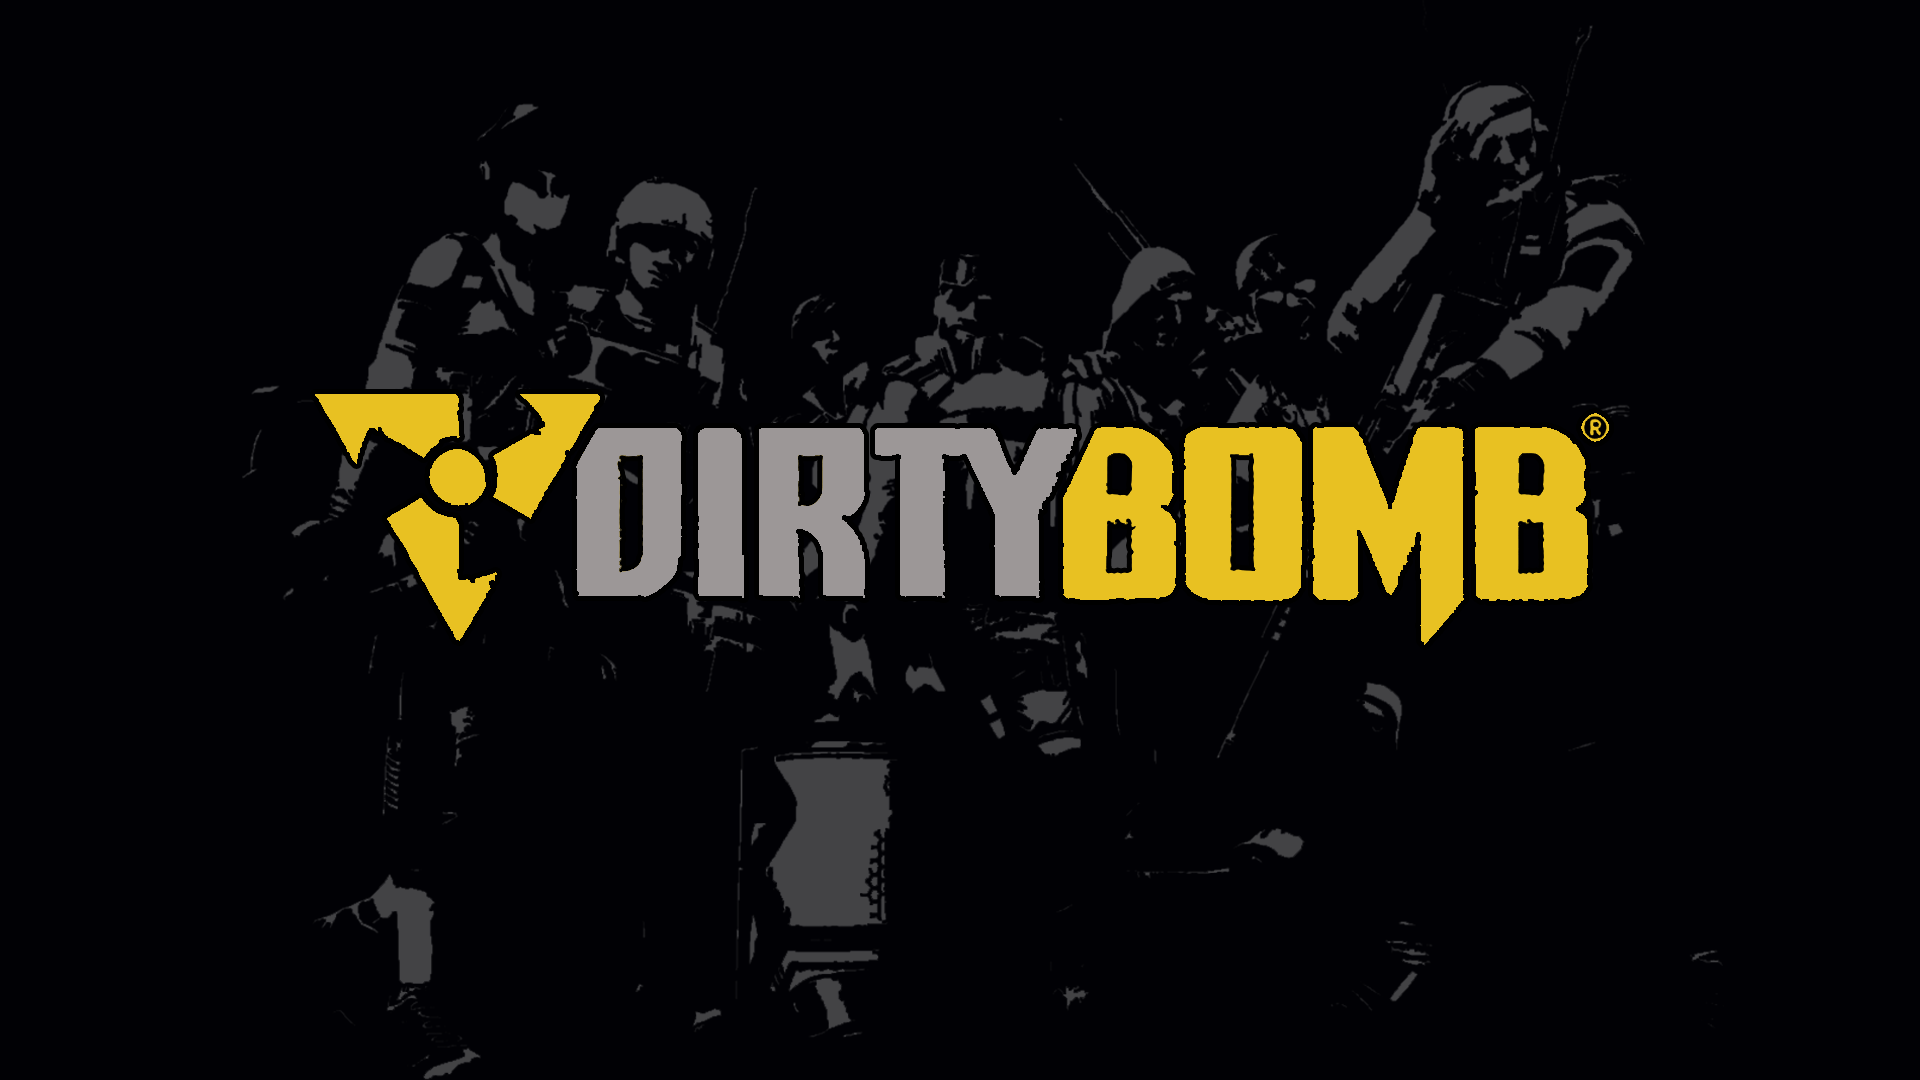 High Quality Image of Dirty › 1920x1080